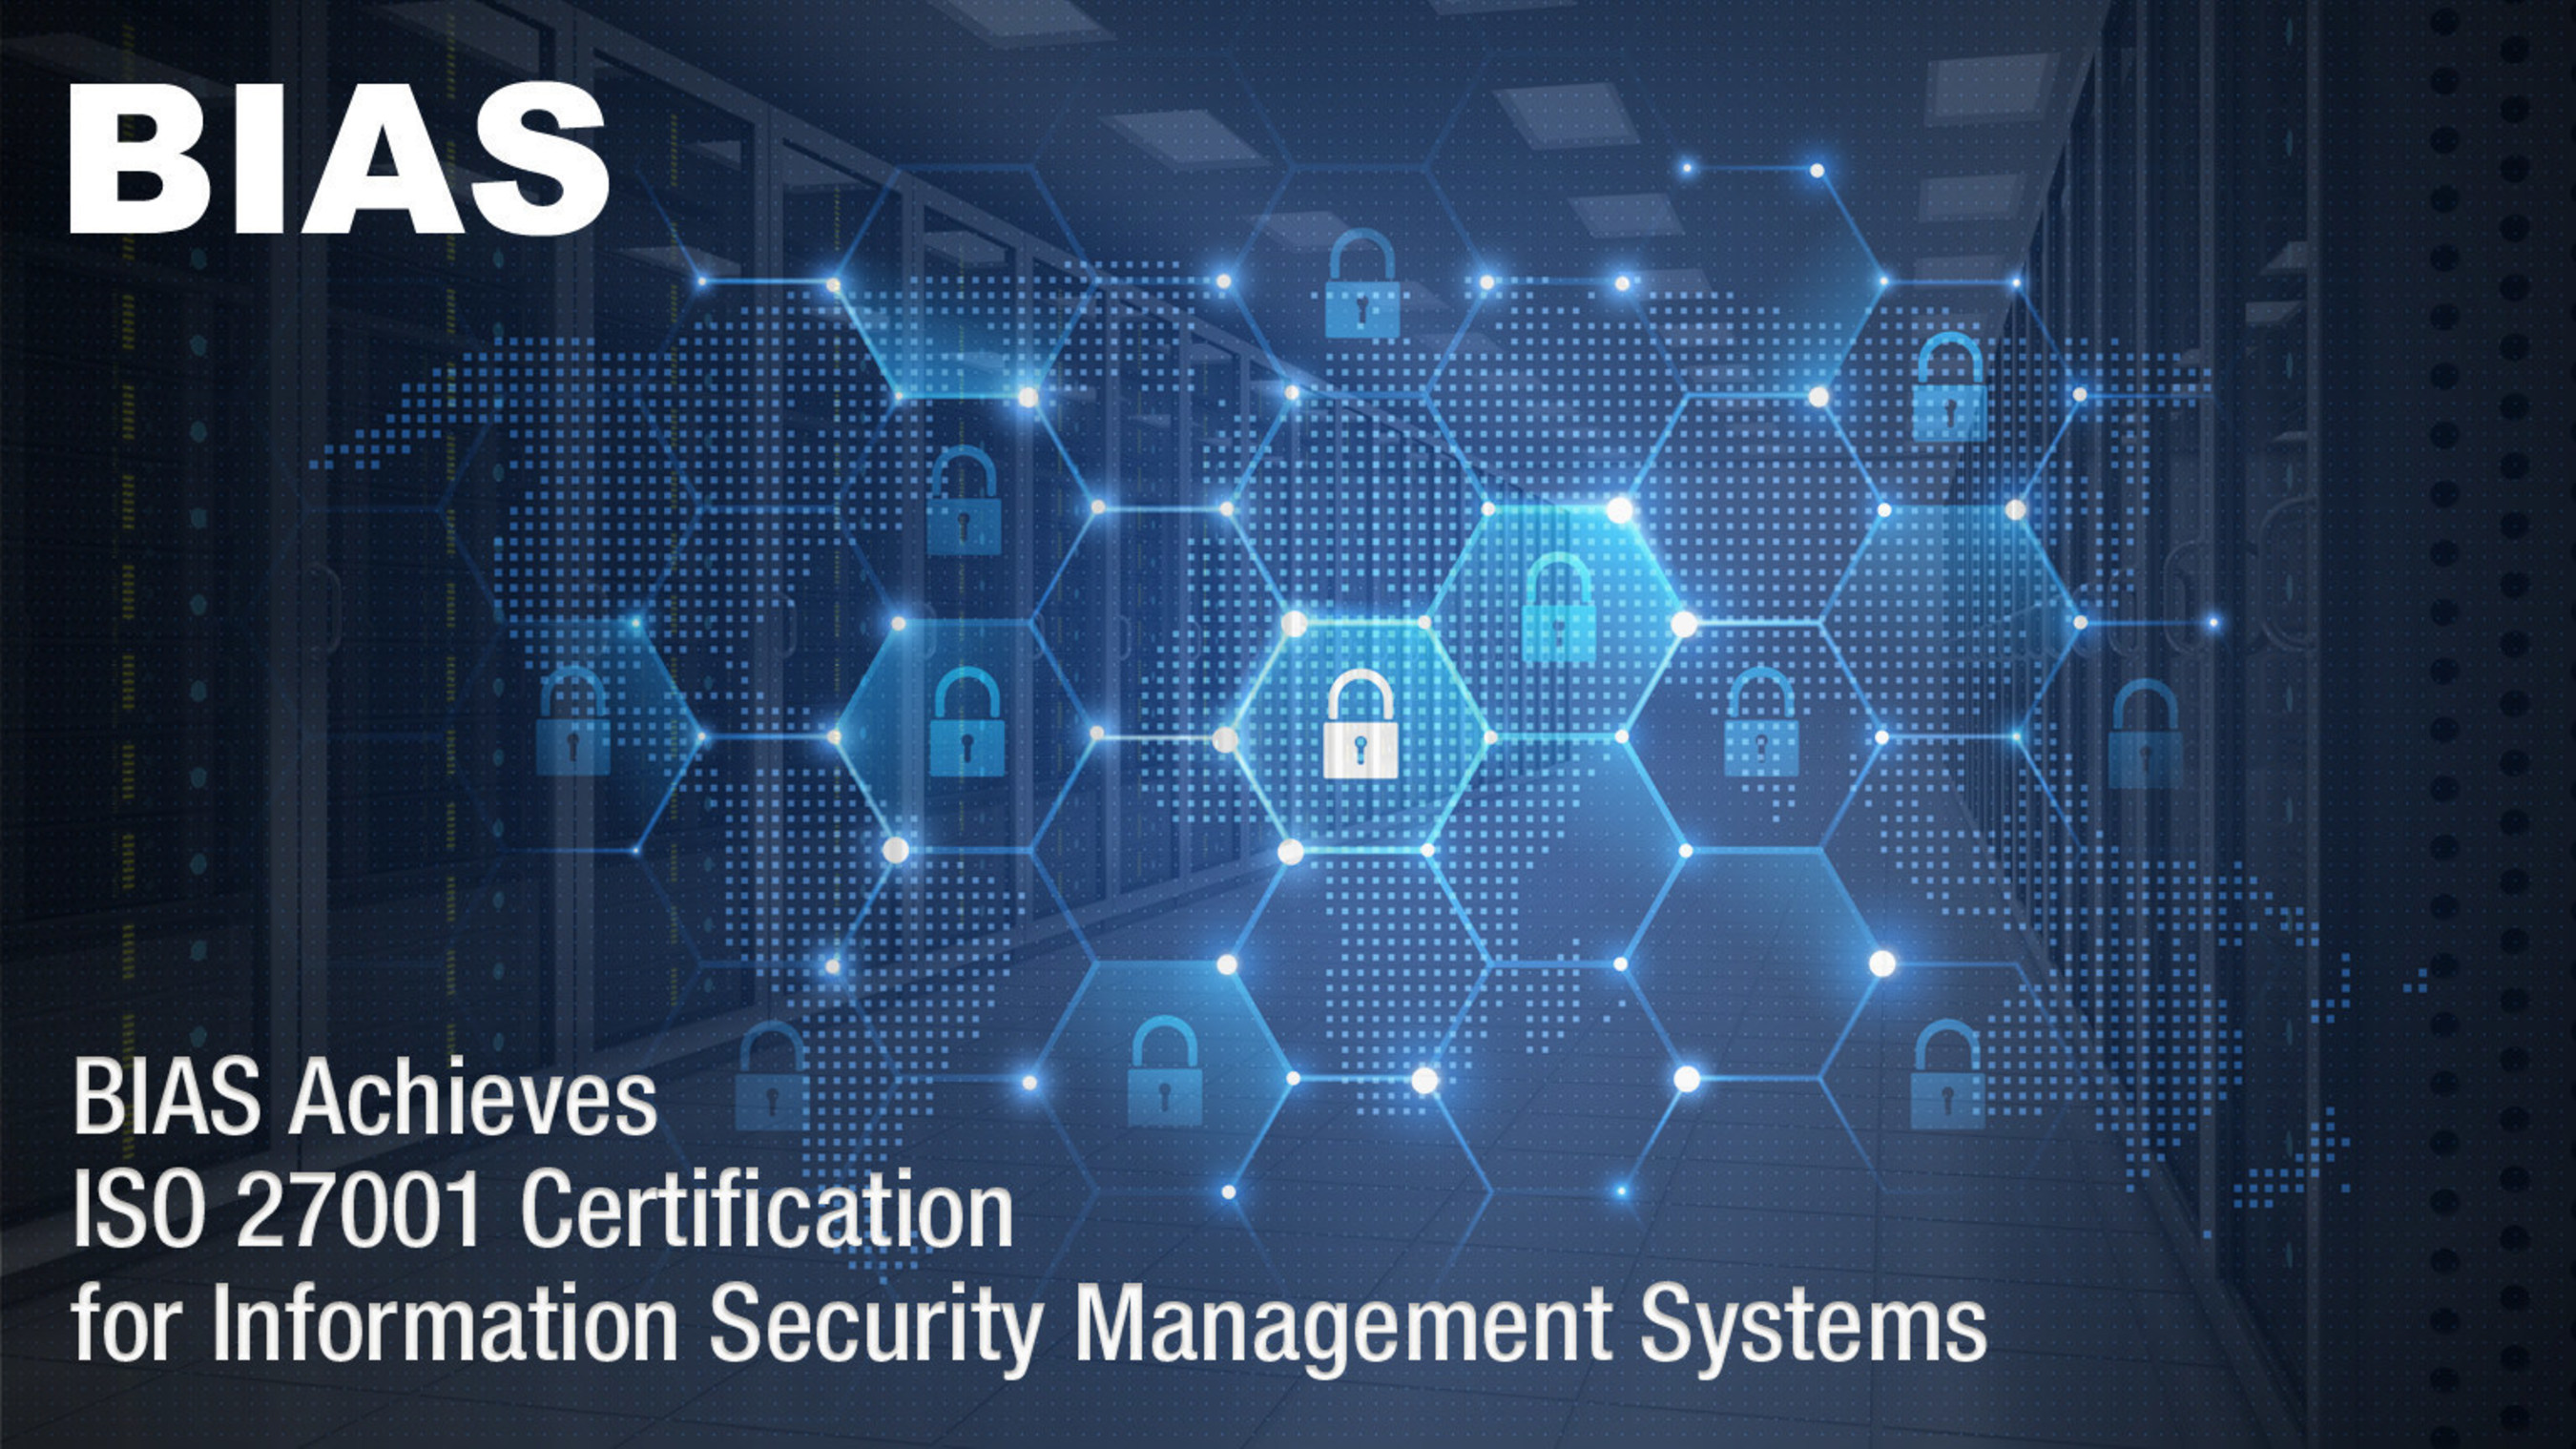 BIAS Corporation Achieves ISO 27001 Certification for Information Security Management Systems